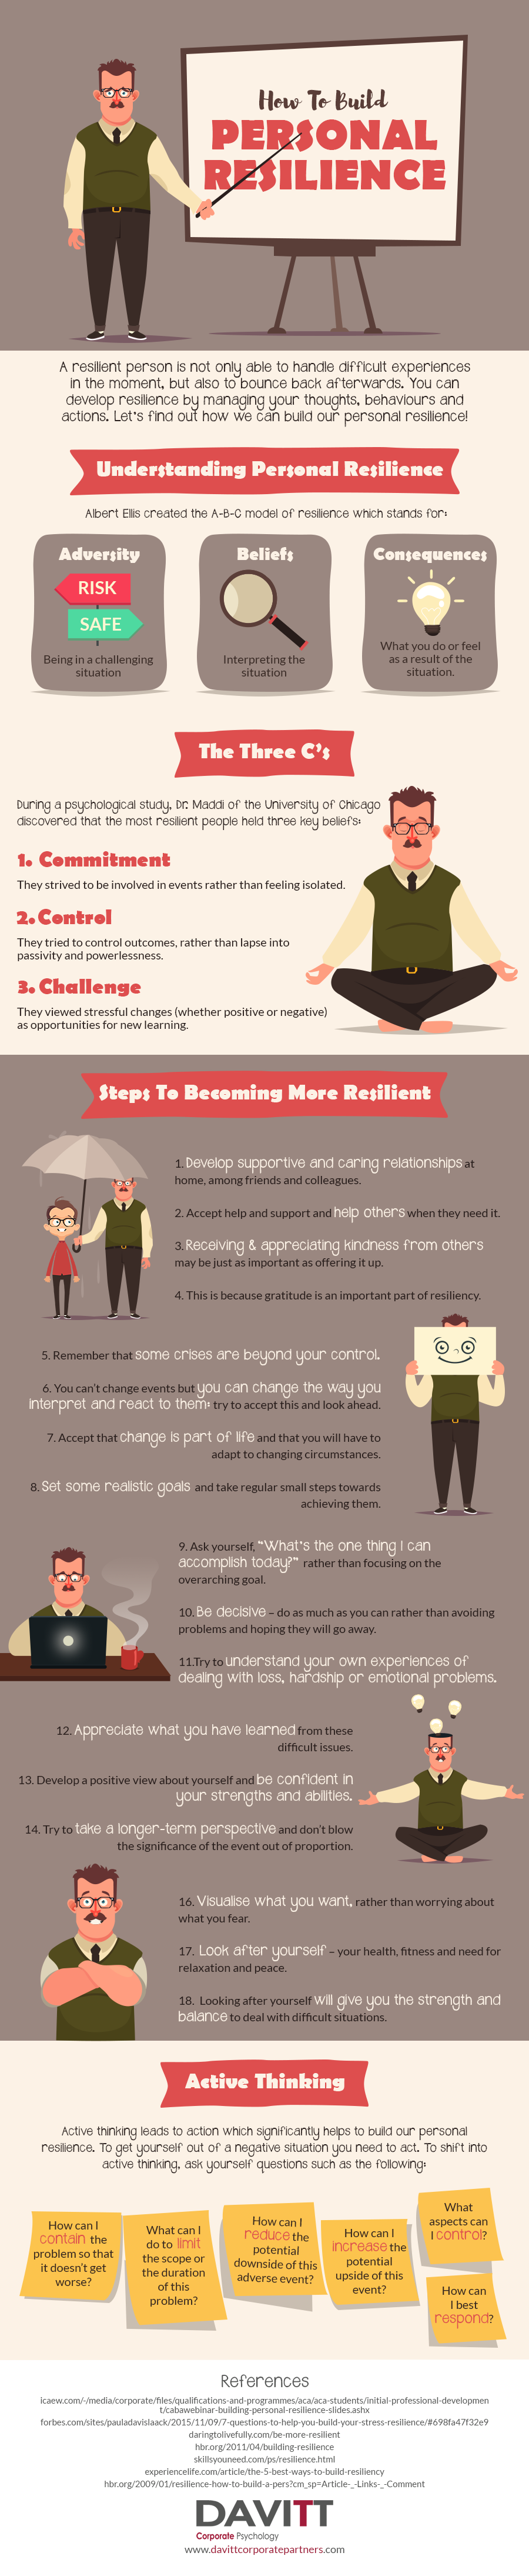 Resilience Building Infographic